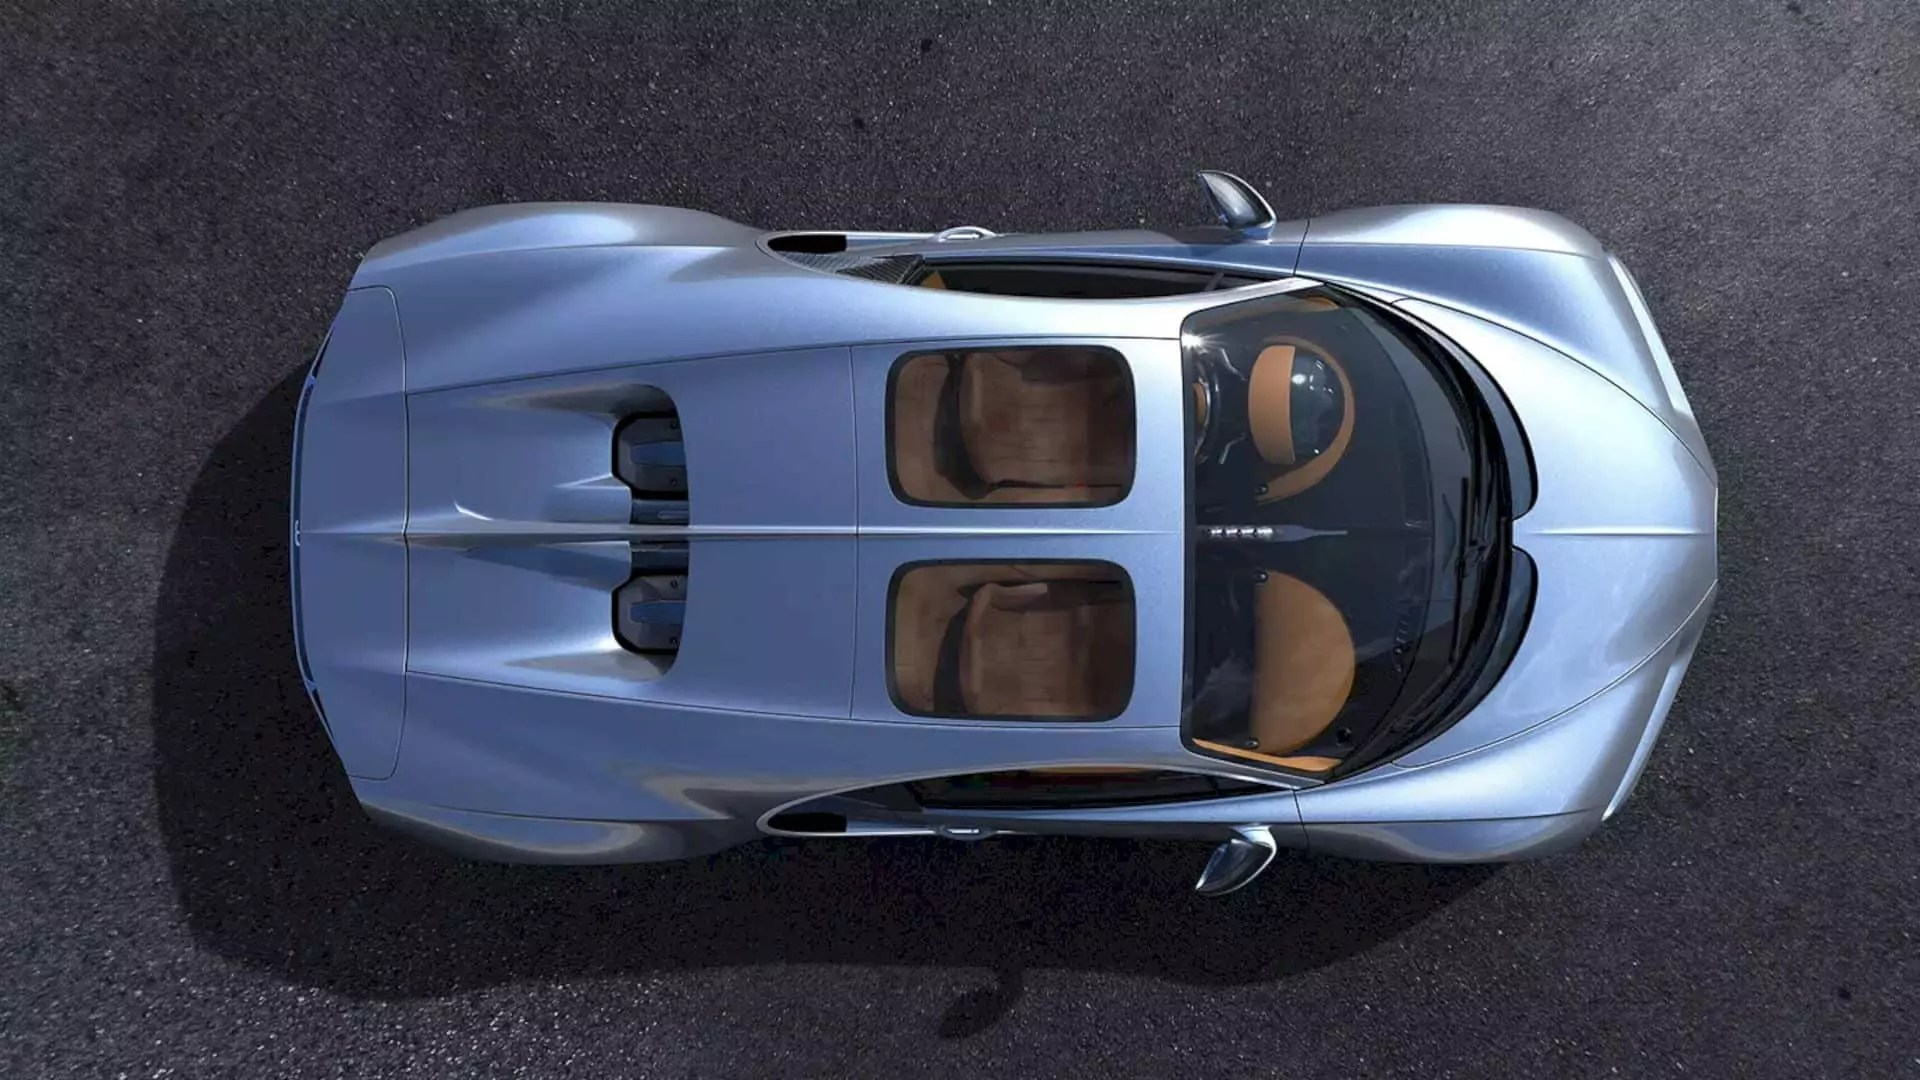 Bugatti Chiron Sky View Enhances The Cool Factor on The Super Car